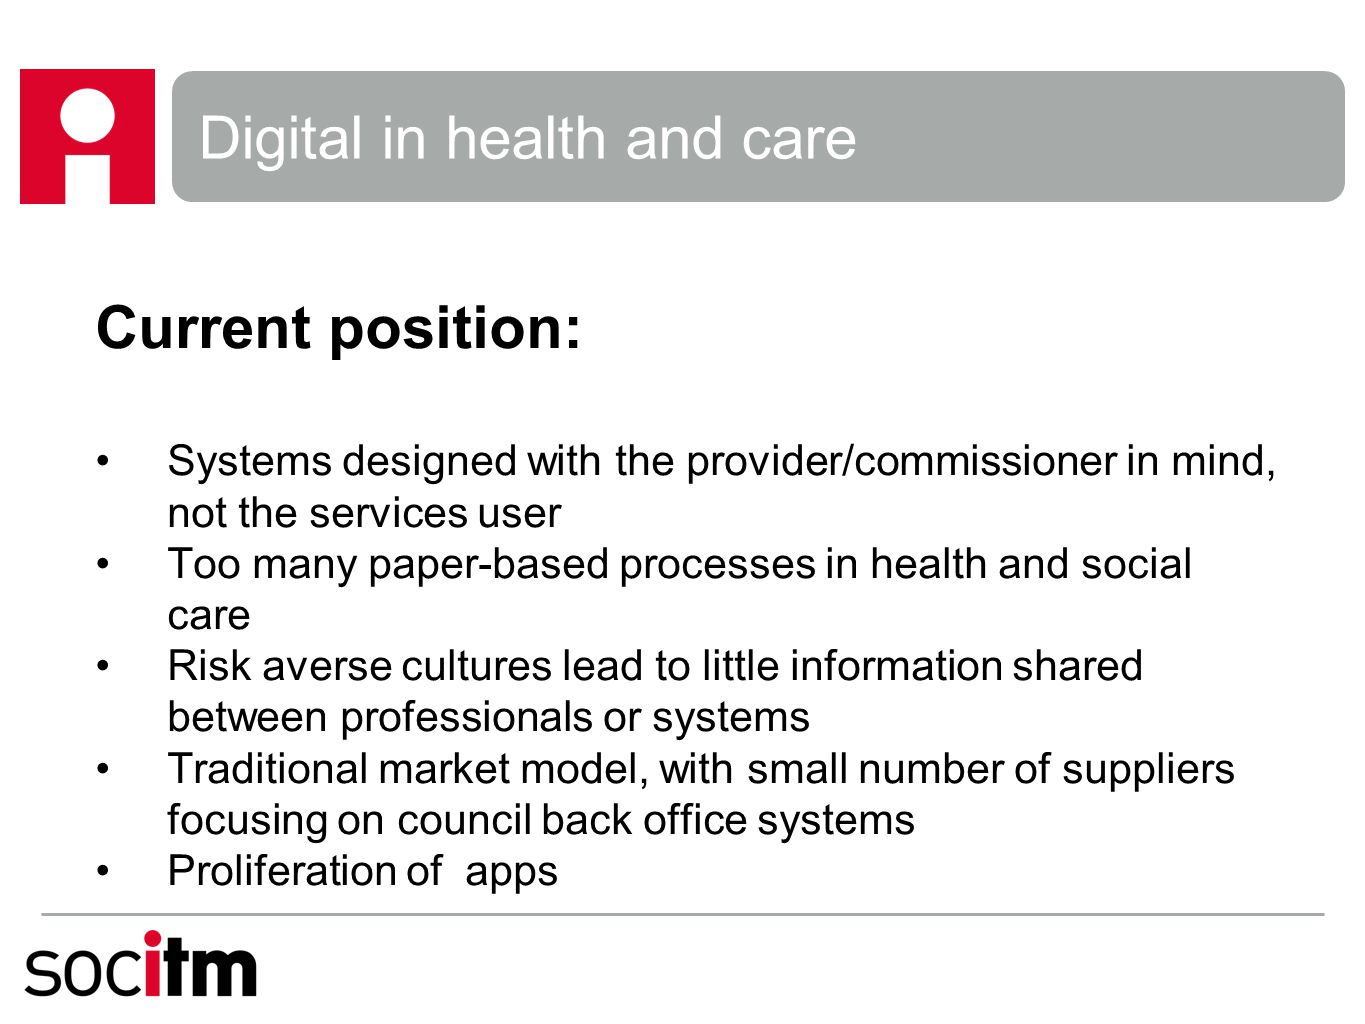 Current position: Systems designed with the provider/commissioner in mind, not the services user Too many paper-based processes in health and social care Risk averse cultures lead to little information shared between professionals or systems Traditional market model, with small number of suppliers focusing on council back office systems Proliferation of apps